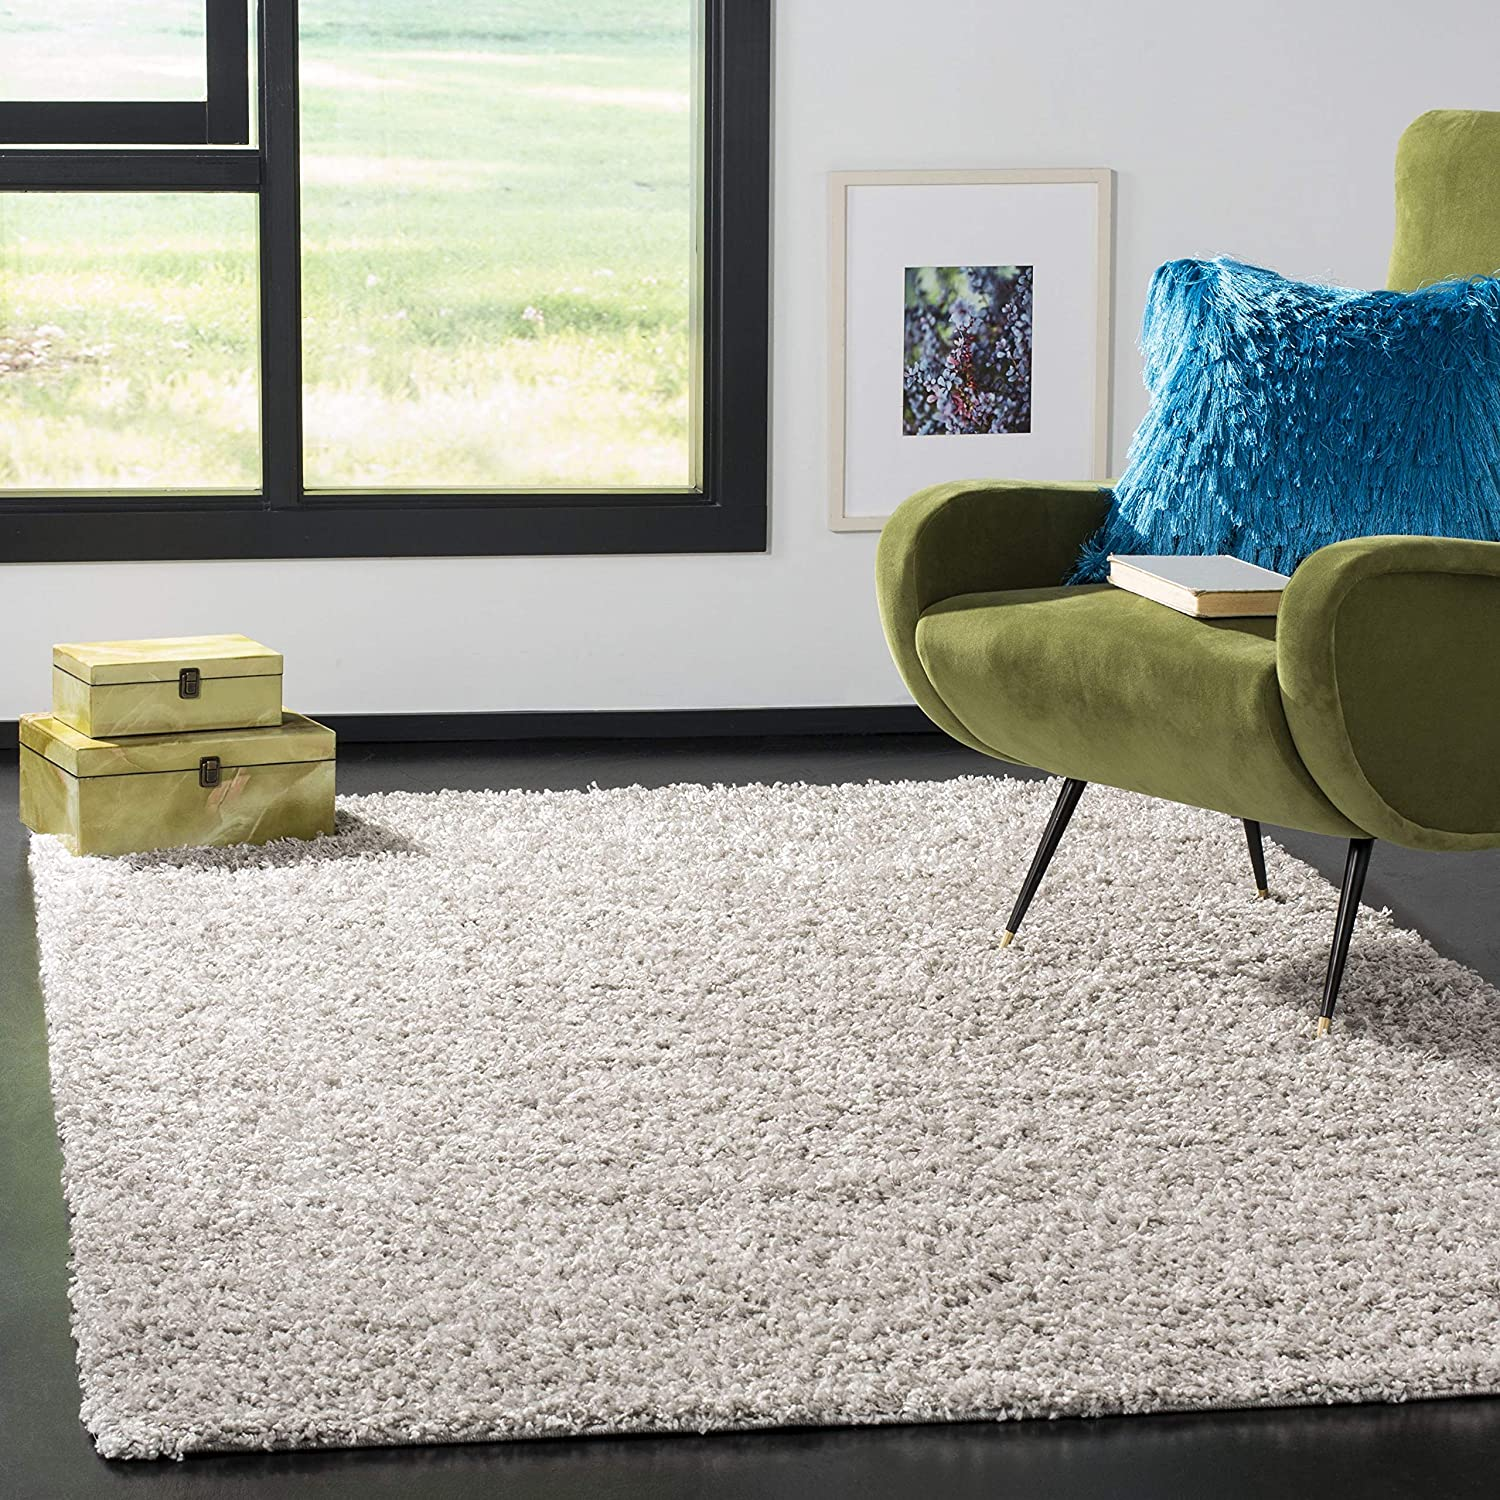 SAFAVIEH Athens Shag Collection SGA119S Non-Shedding Living Room Bedroom Dining Room Entryway Plush 1.5-inch Thick Area Rug, 3' x 5', Silver